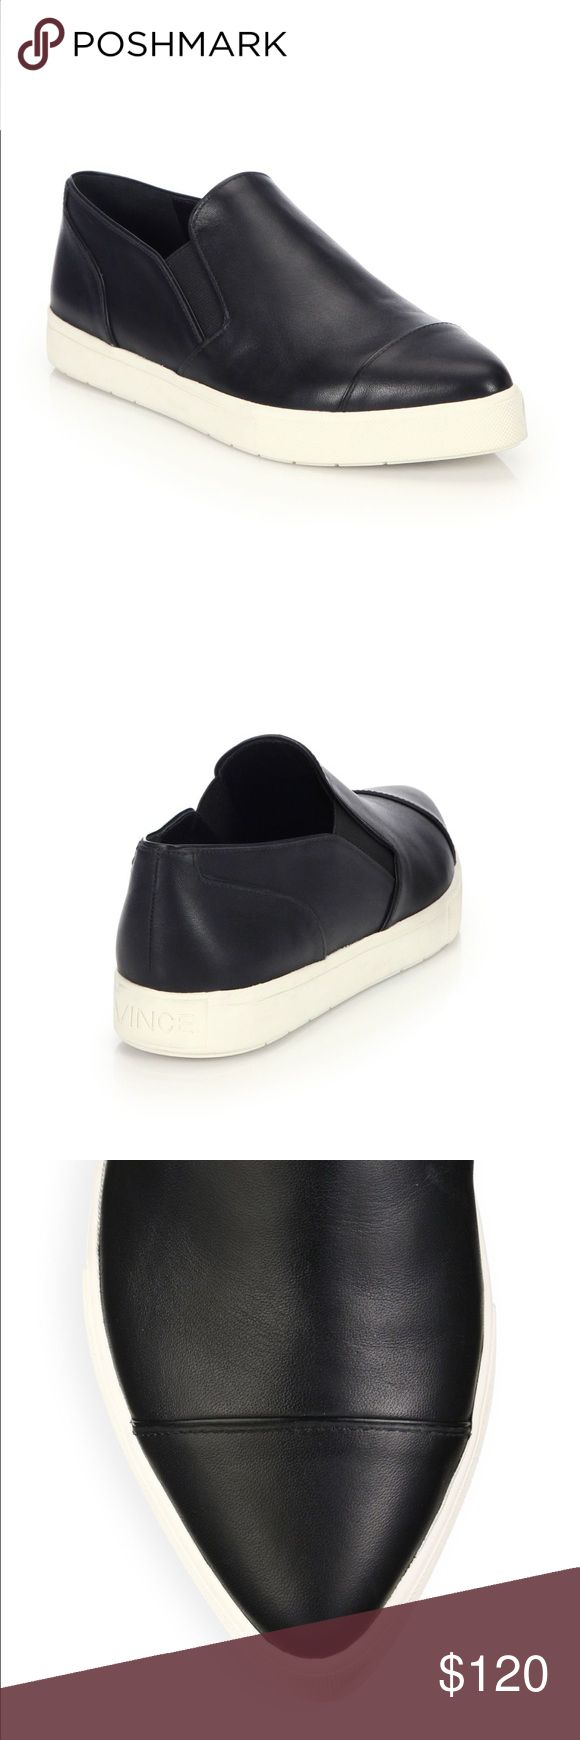 Vince Paeyre Black Leather Sneaker Size 7.5 w/ Box These have been worn for about an hour ! Perfect condition, comes with dust bag, Size 7.5 and true to Size, all leather, black in color, slightly pointed toe front Vince Shoes Sneakers